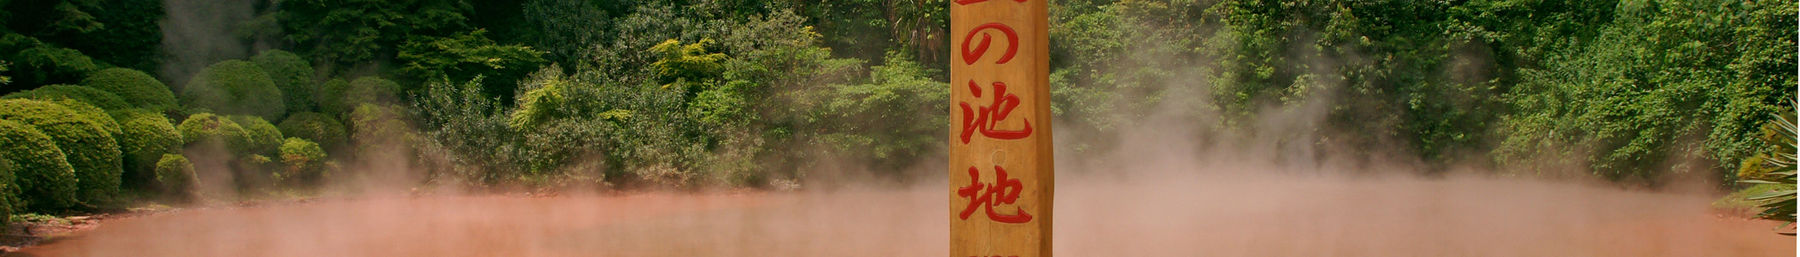 "One of the ""hells"" of Beppu: Chinoike Jigoku (Blood Pond Hell)"